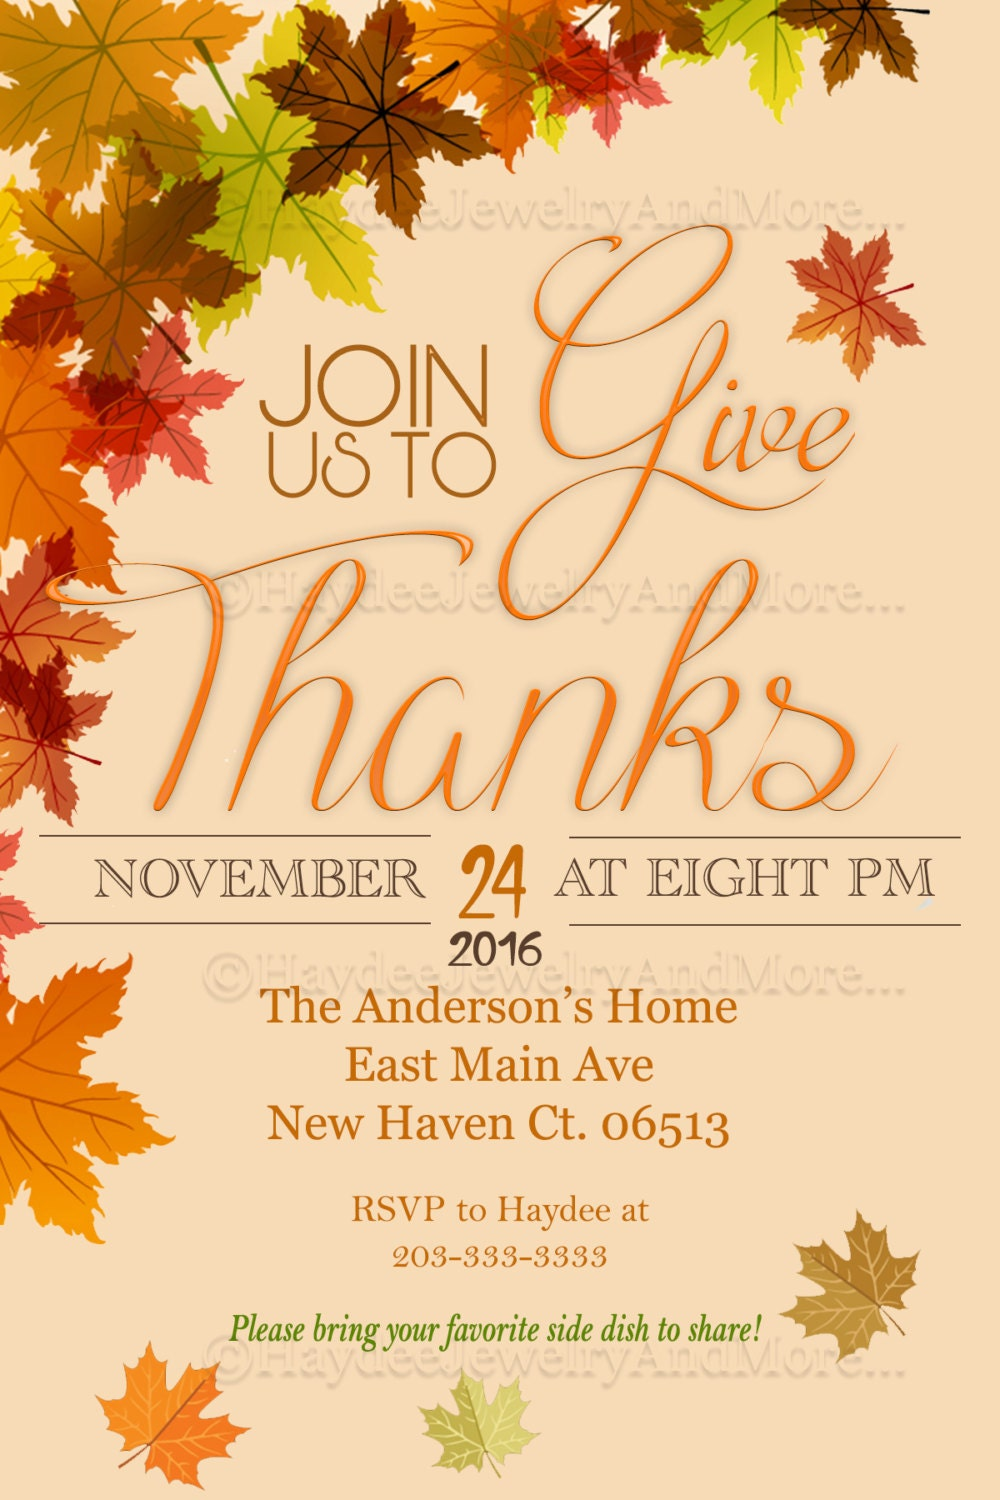 Thanksgiving Invitation Card Join Us To Give Thanks Invitation Etsy